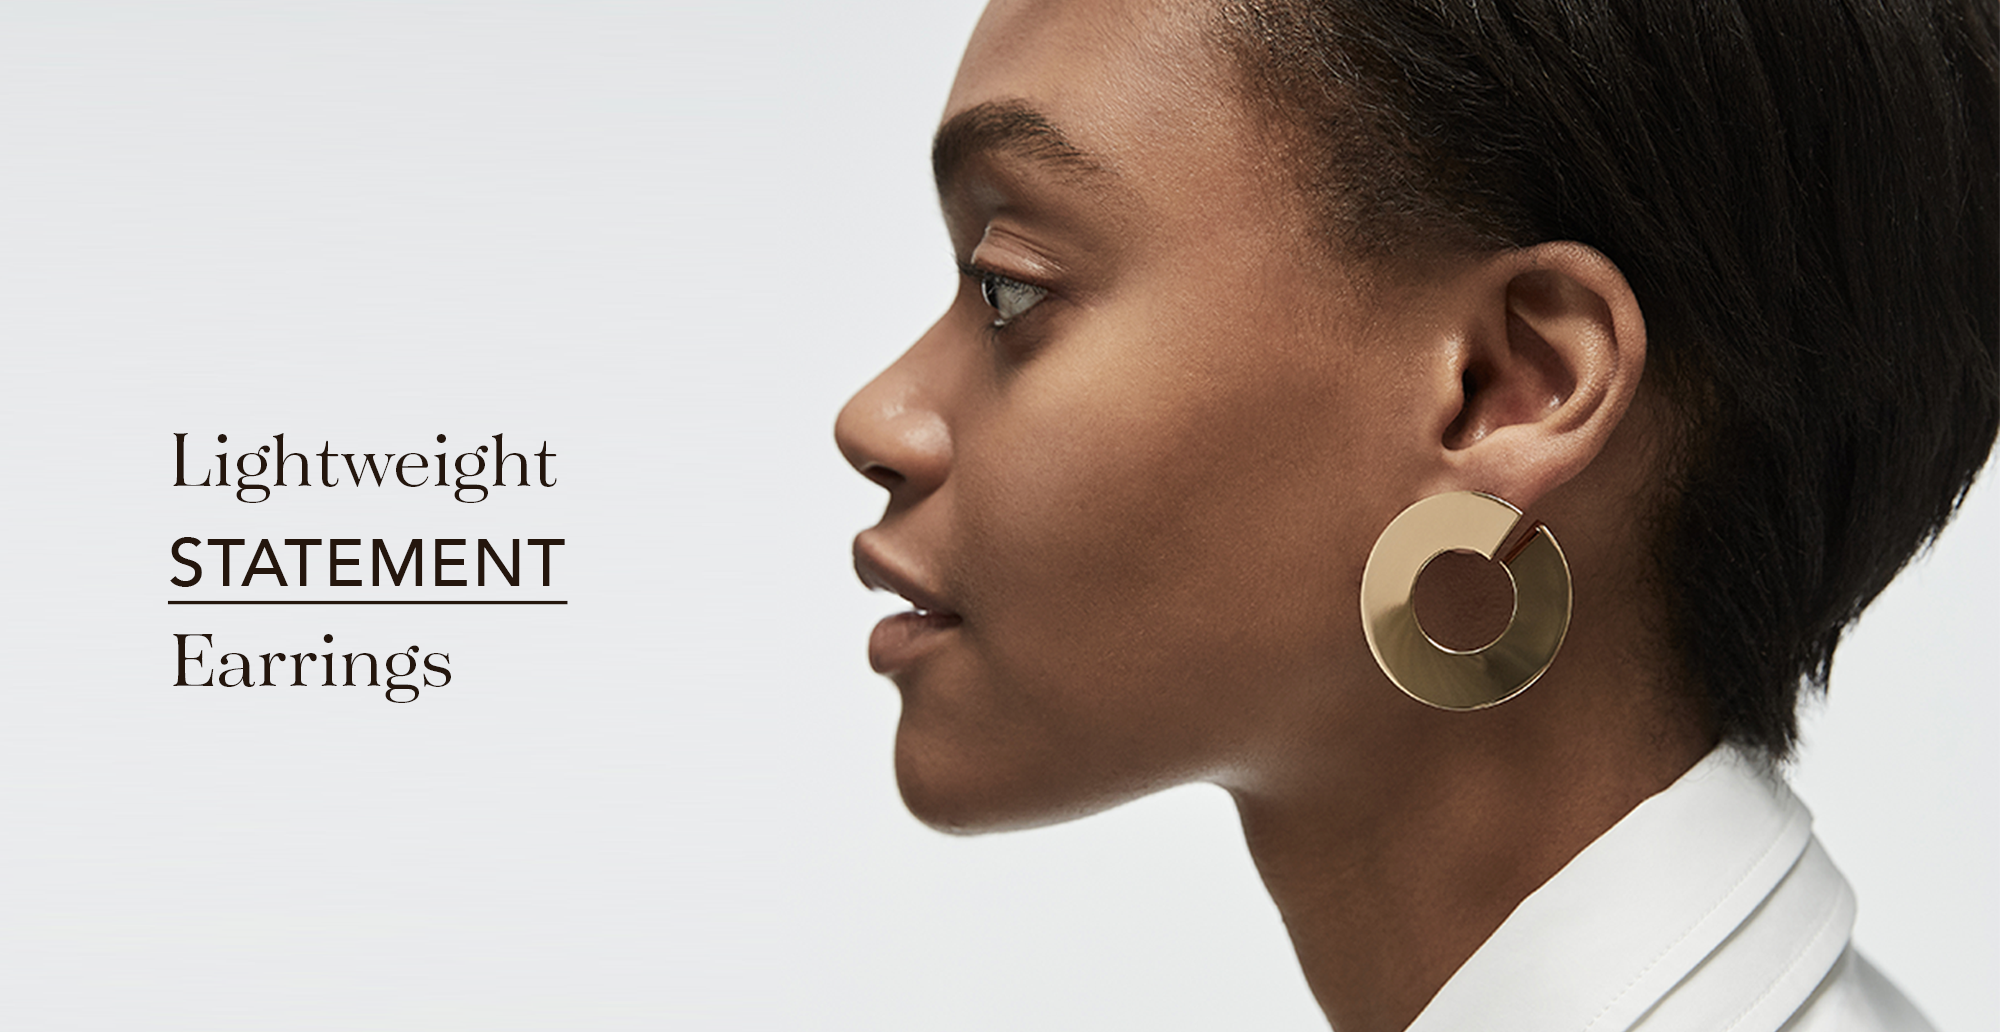 Shop 14K gold and sterling silver earrings by Jenny Bird